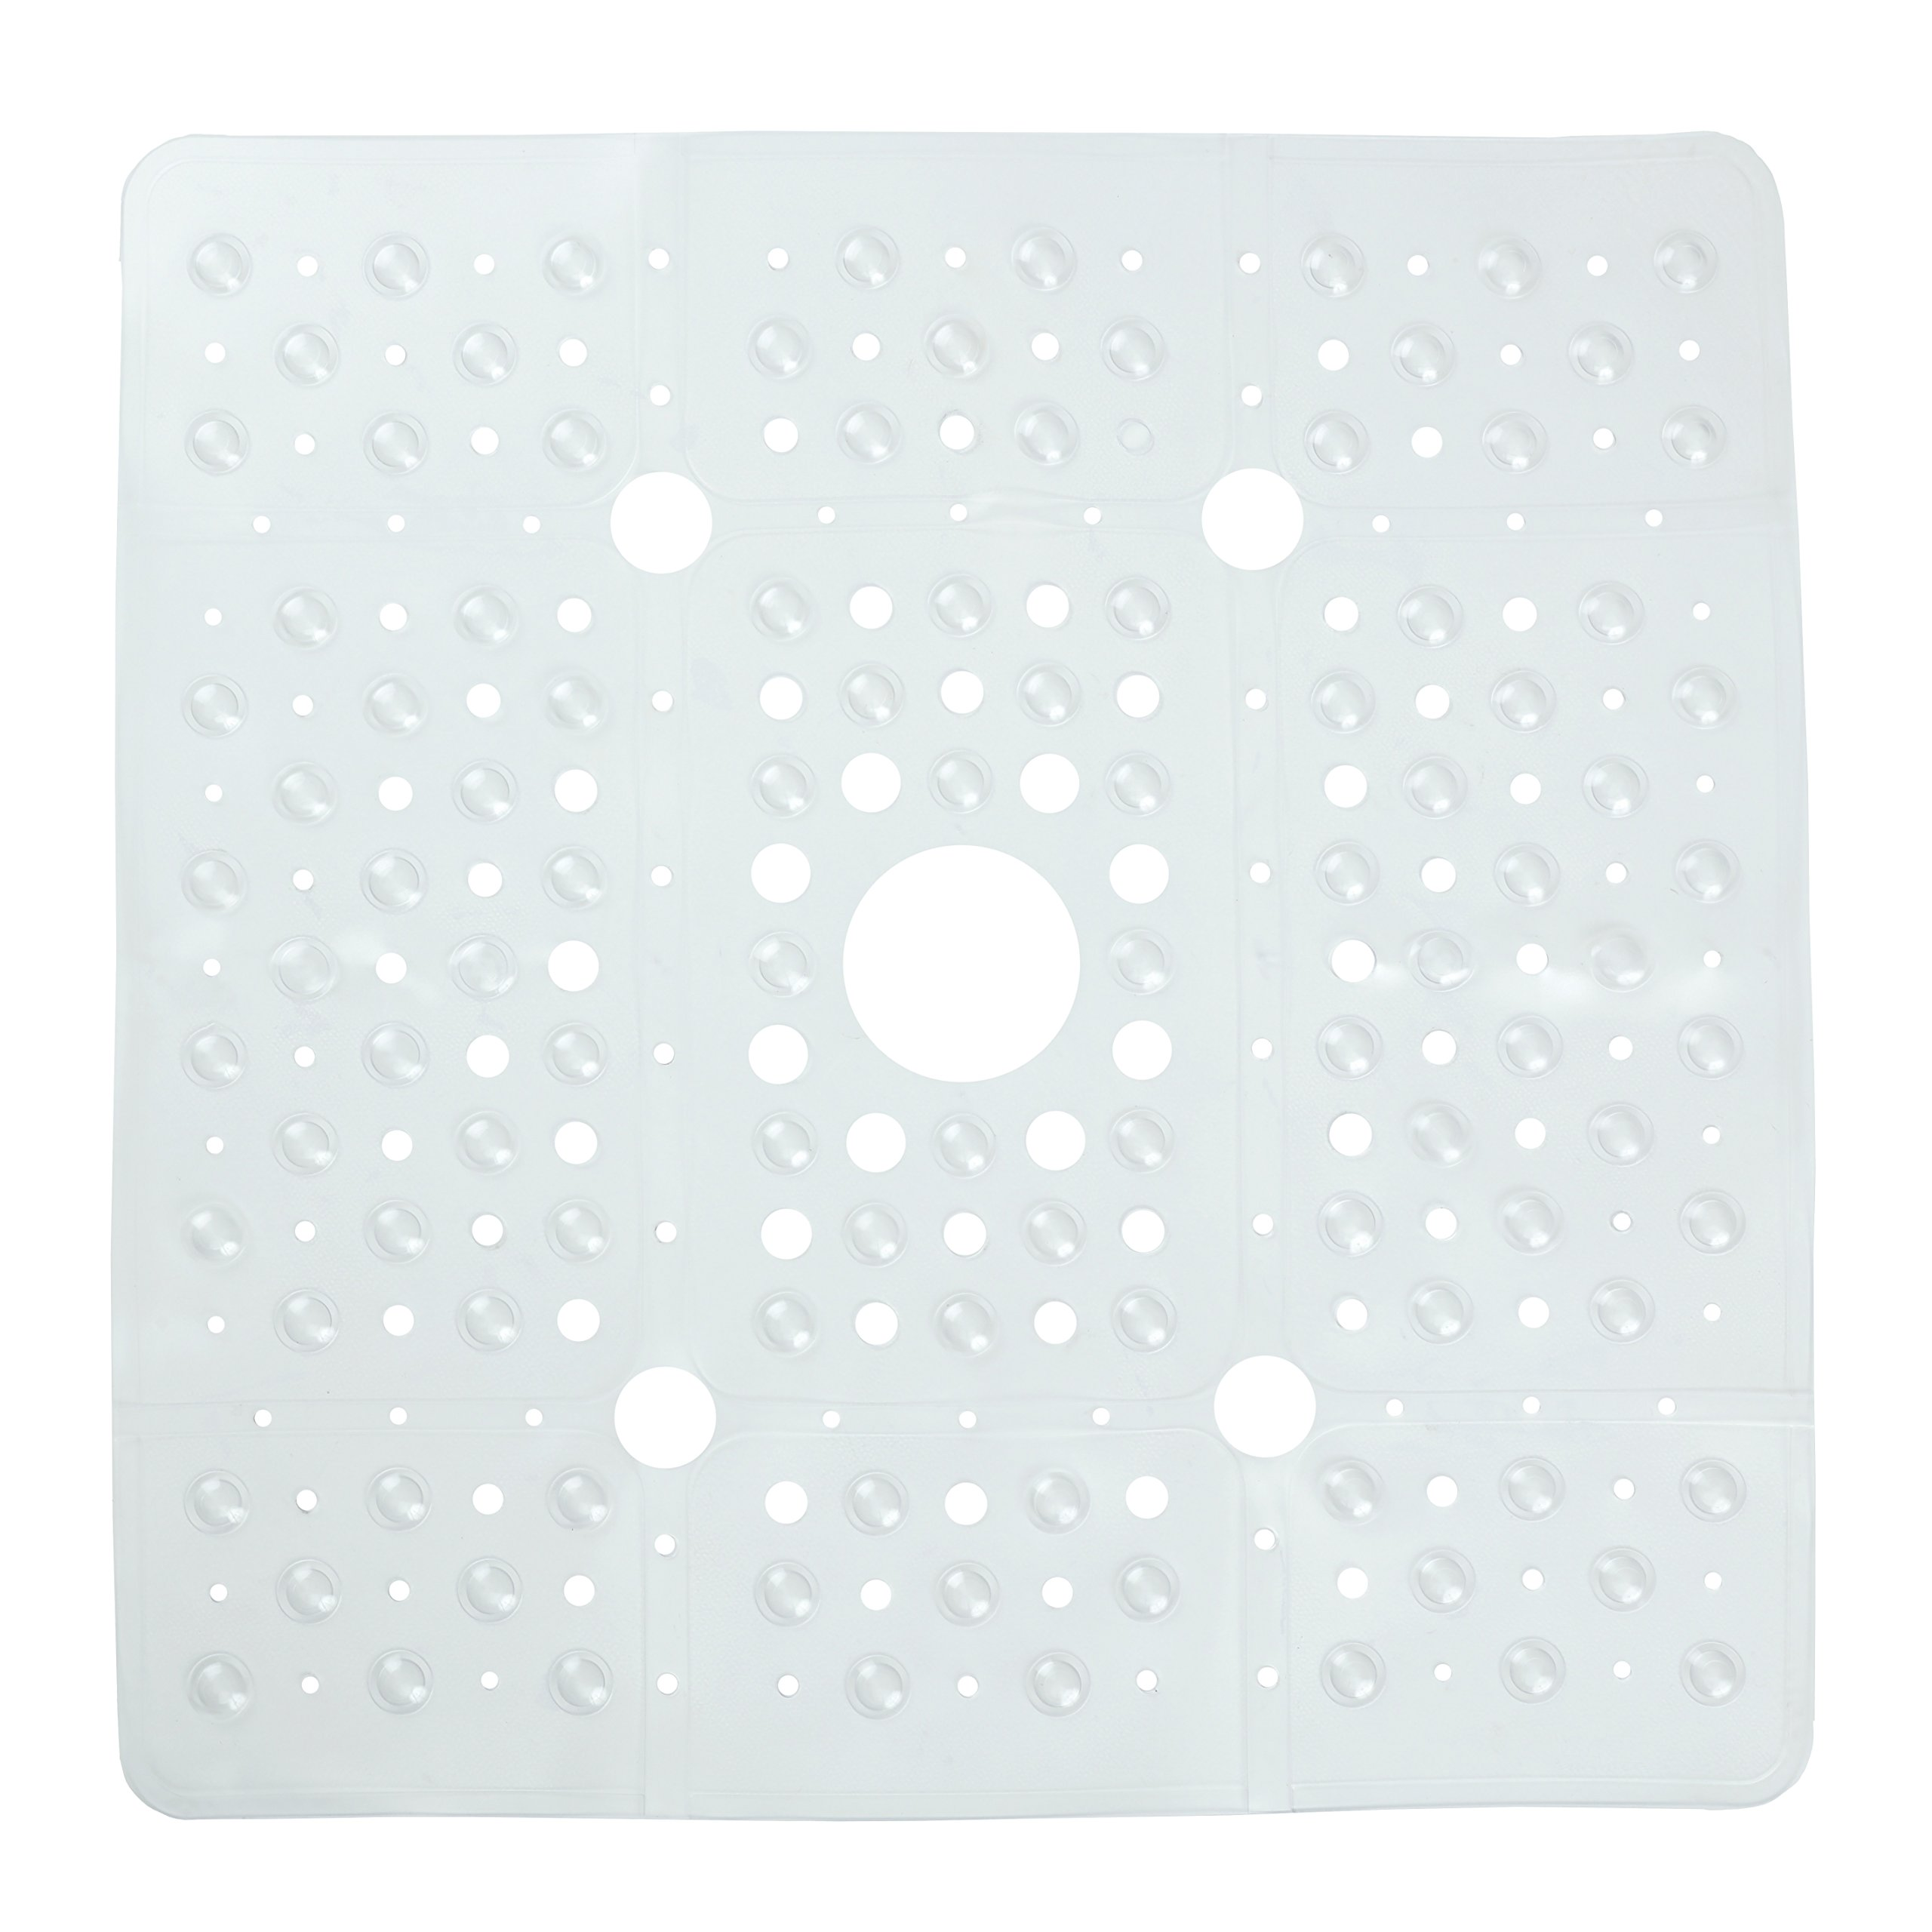 SlipX Solutions Extra Large Clear Square Shower Mat Provides 65% More Coverage & Non-Slip Traction (27'' Sides, 100 Suction Cups, Great Drainage)